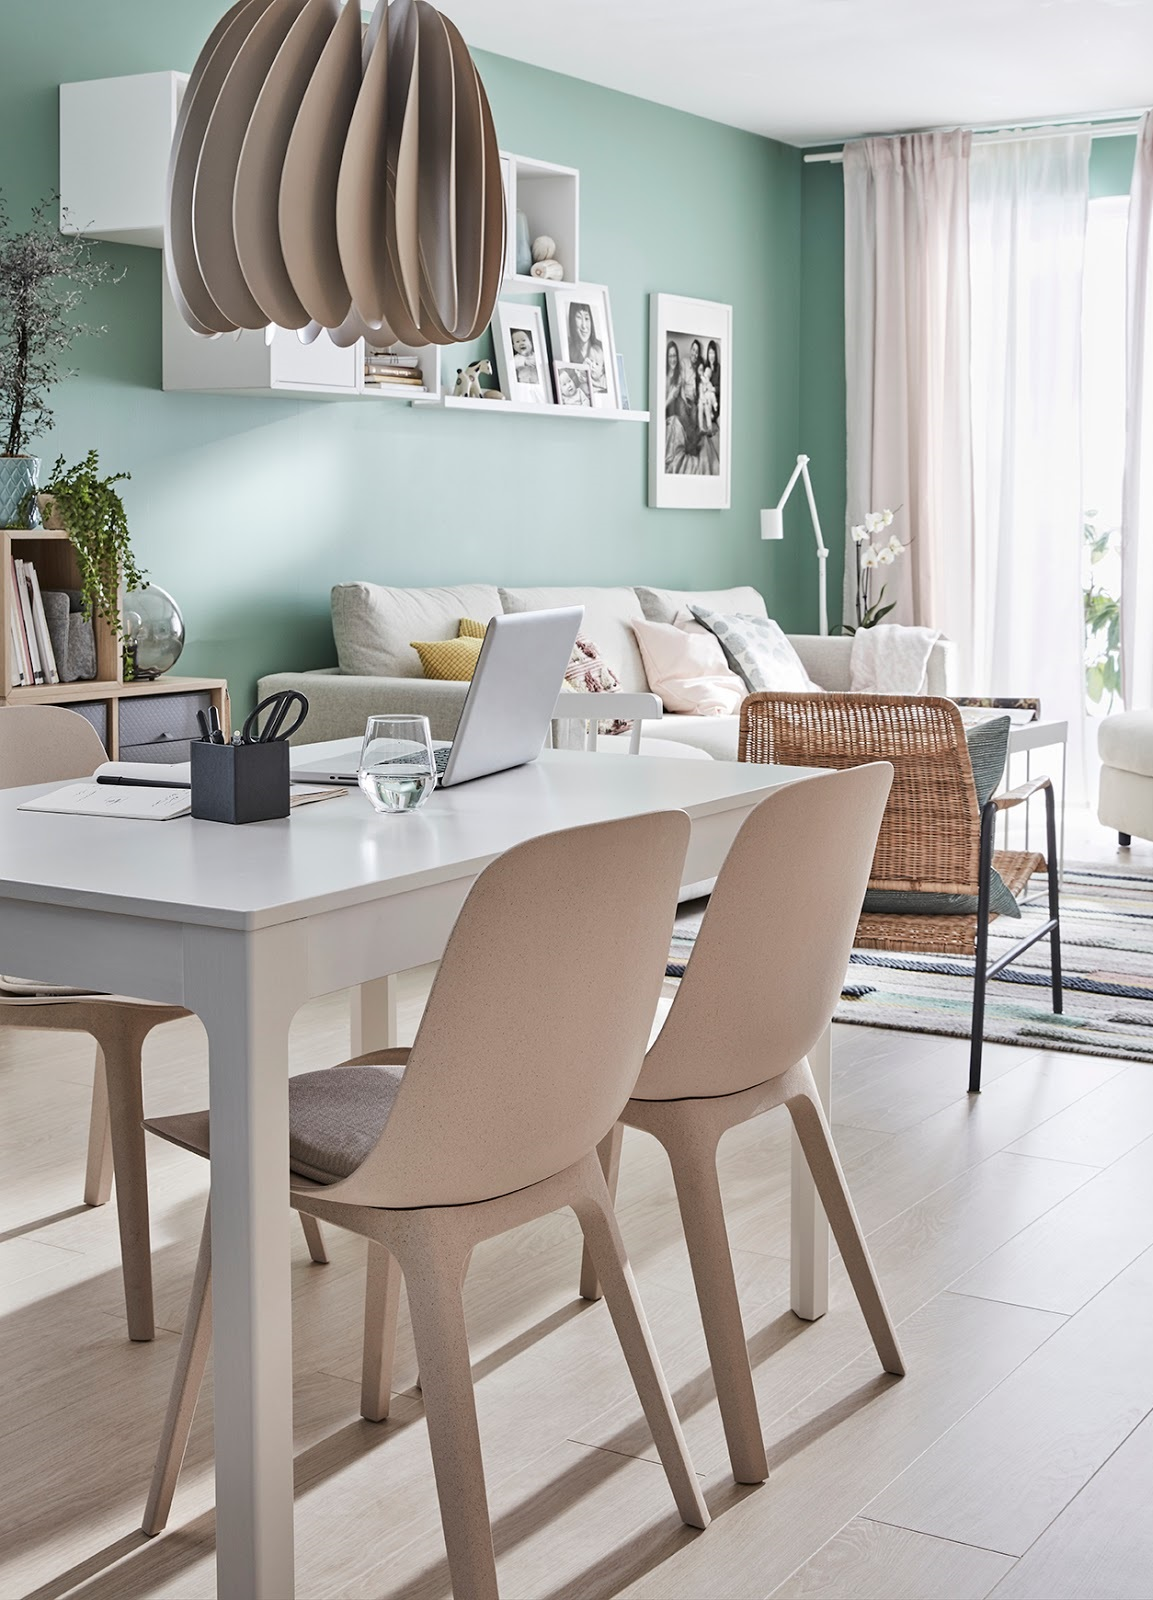 rustic ikea furniture catalog 2020   IKEA Catalog 2020: Get Ready For A Fresh Start — THE NORDROOM